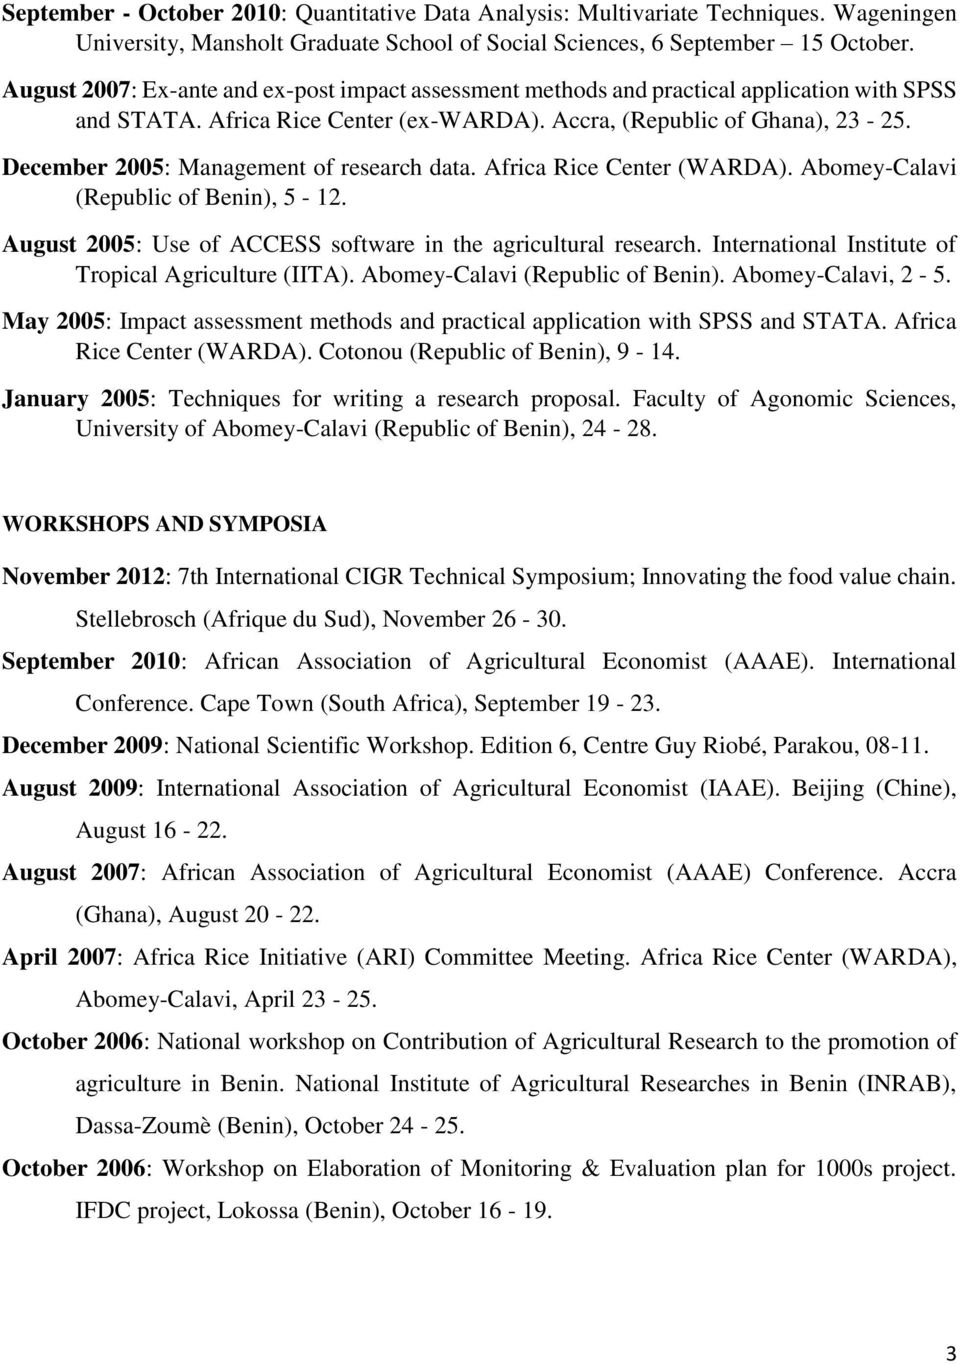 December 2005: Management of research data. Africa Rice Center (WARDA). Abomey-Calavi (Republic of Benin), 5-12. August 2005: Use of ACCESS software in the agricultural research.